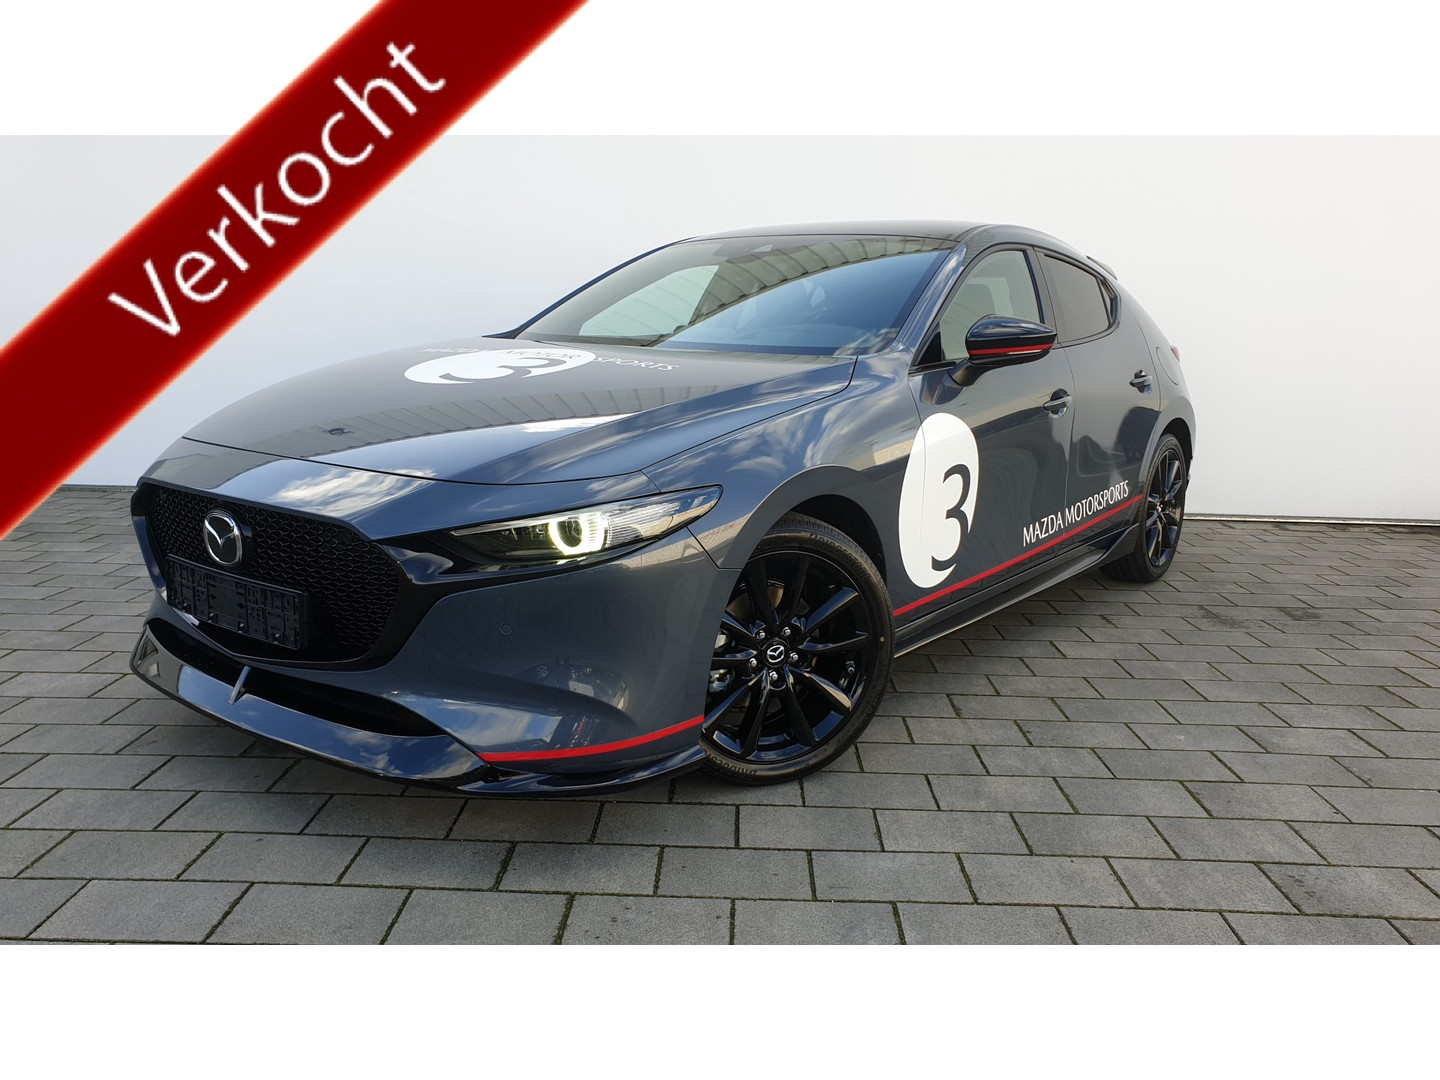 Mazda 3 2.0 skyactiv-x tcr edition *€5.507,- netto deal voordeel*